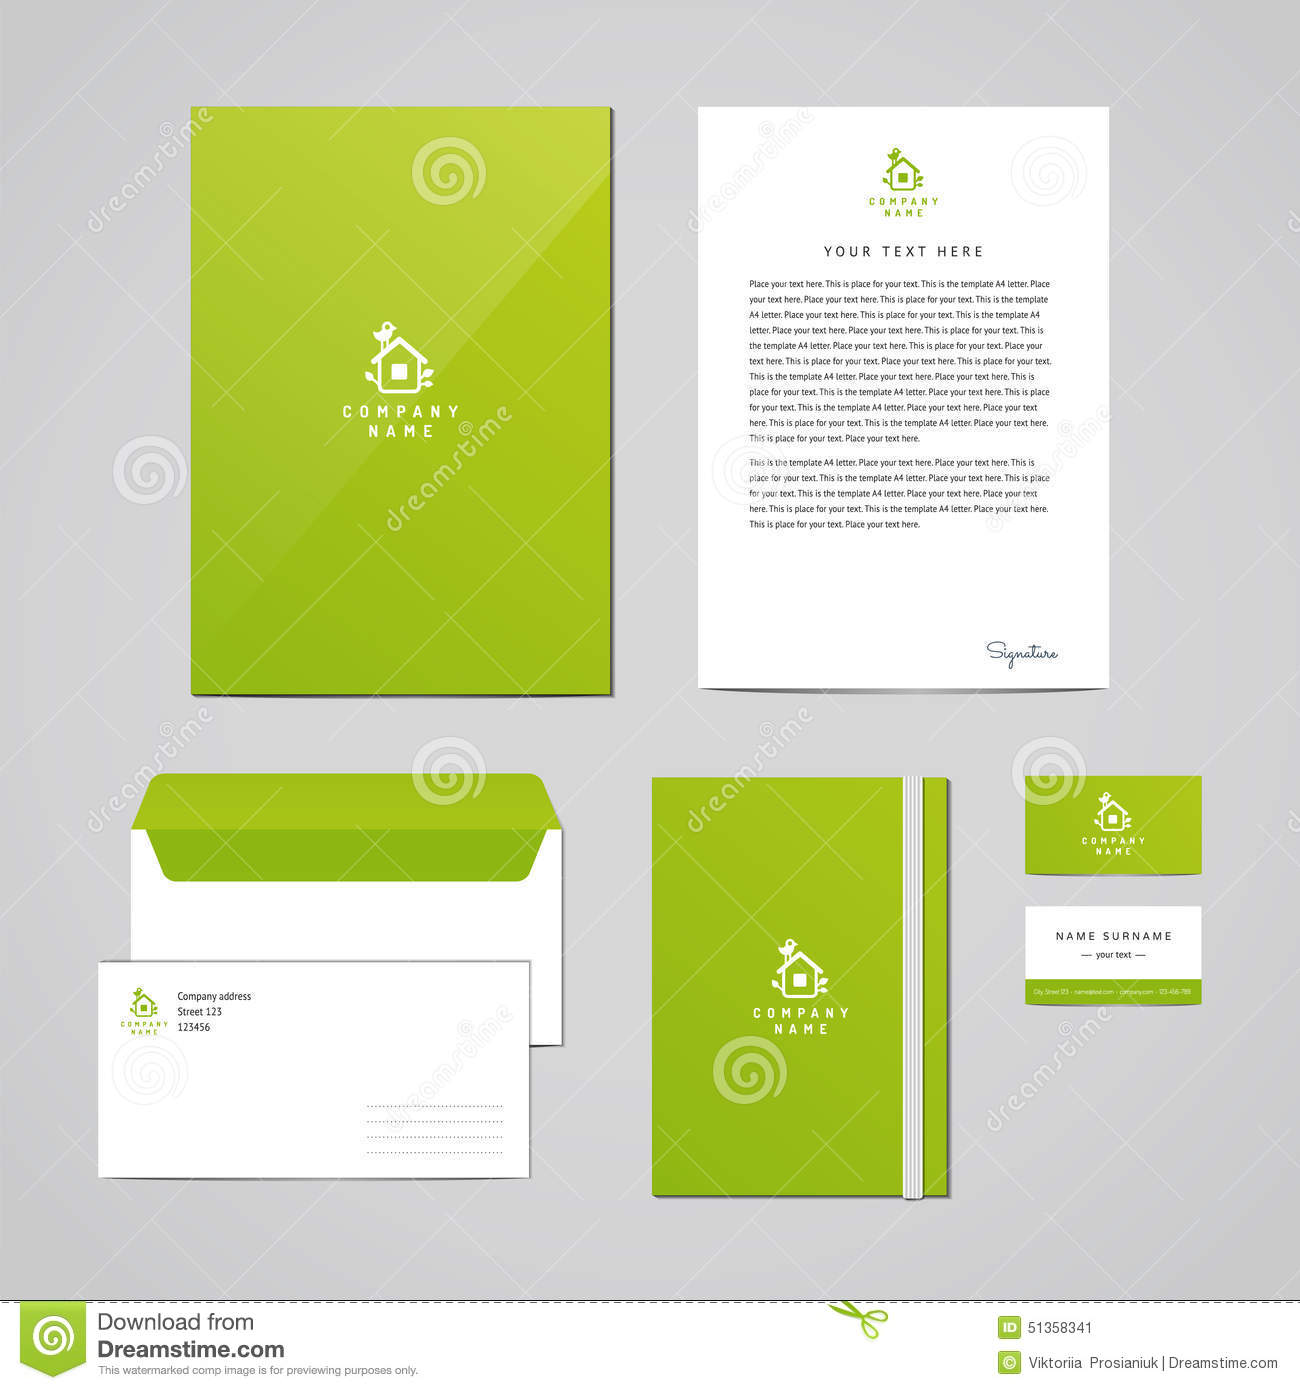 Corporate identity eco design template documentation for business download corporate identity eco design template documentation for business folder letterhead envelope friedricerecipe Image collections